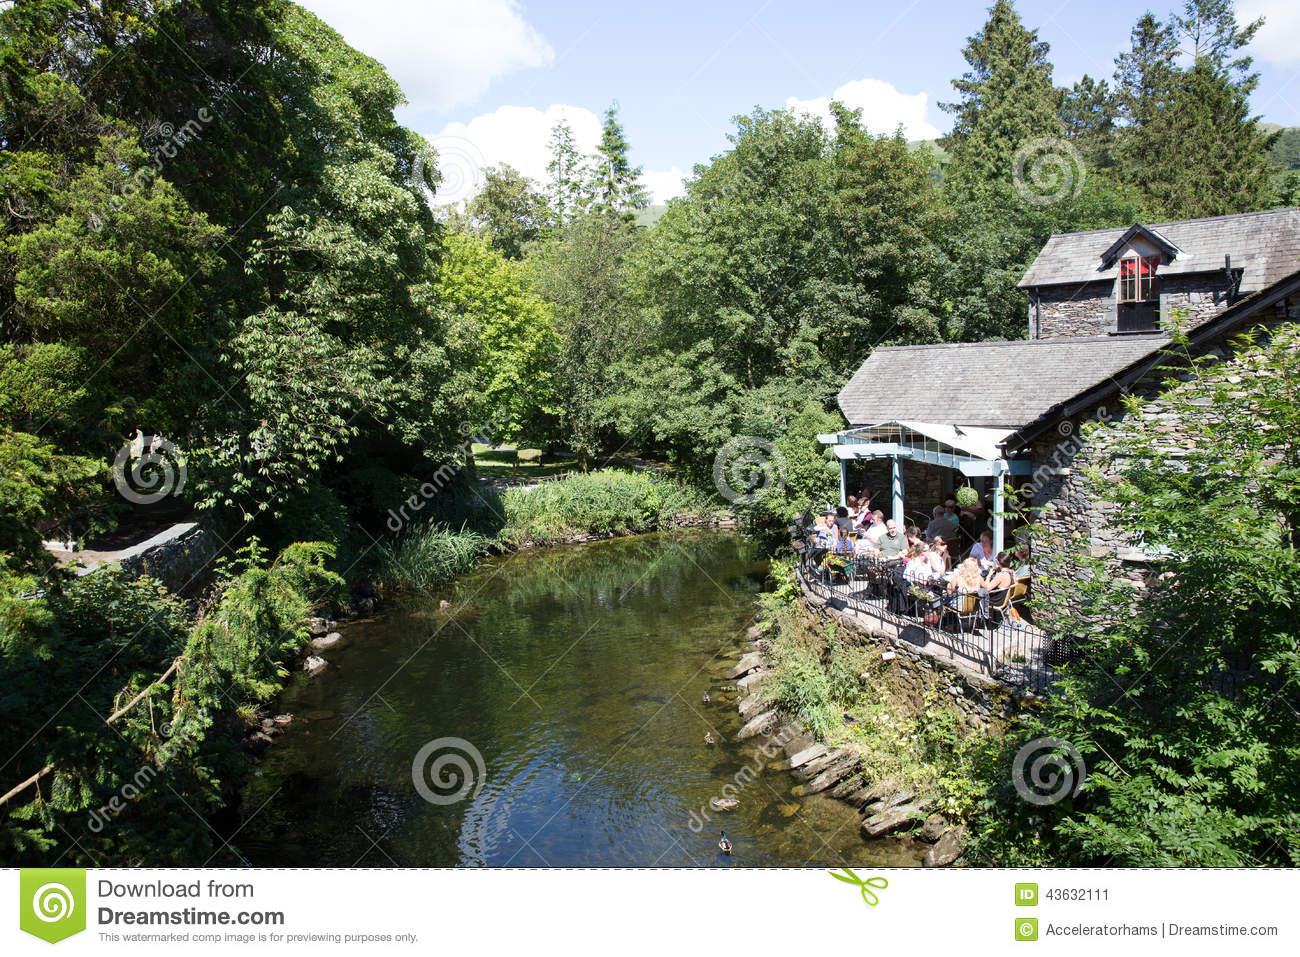 China Water Towns in addition Treehouse Stairs besides Single Floor Kerala House Elevation White Grey further Editorial Photo Grasmere Village Cumbria Uk Popular Tourist Destination English Lake District National Park Tourists Holidaymakers Image43632111 moreover 350013. on beautiful lake house designs